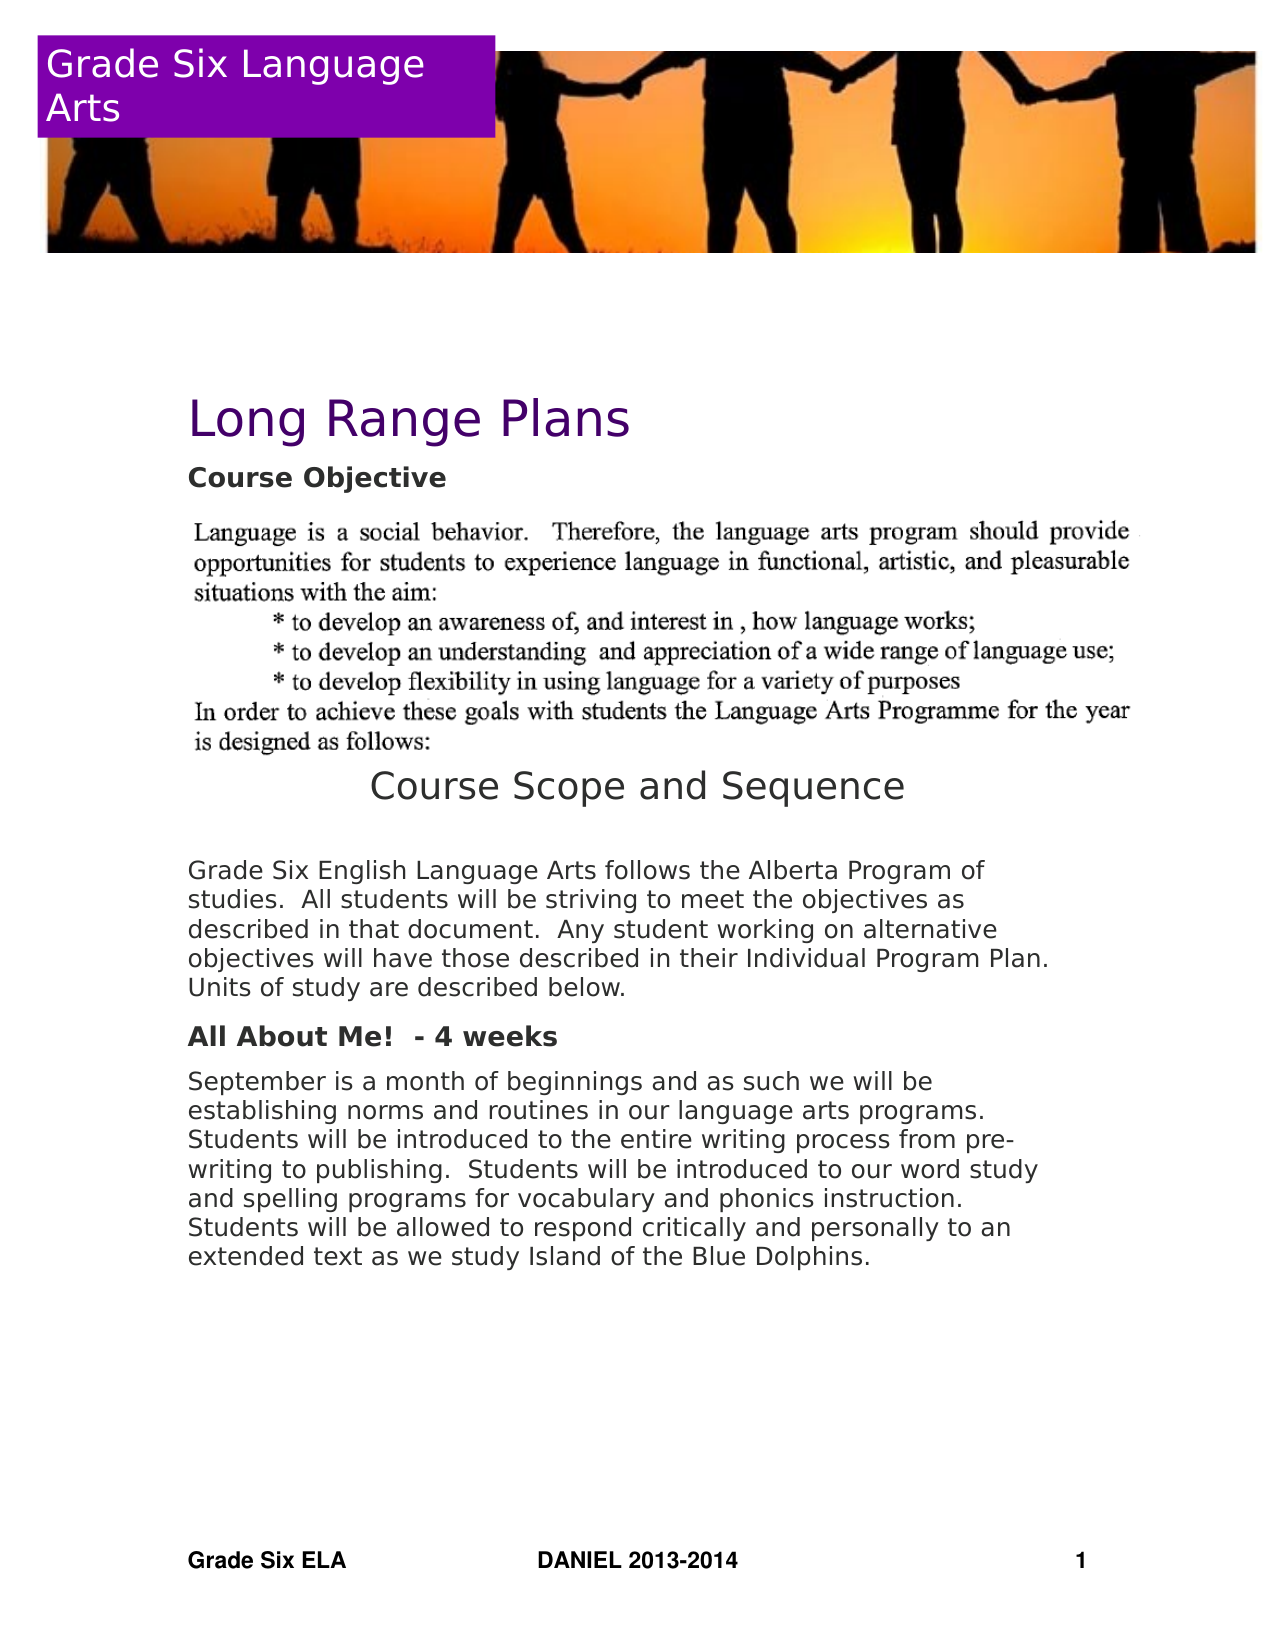 Grade 6 ELA Long Range Plans Resource Preview